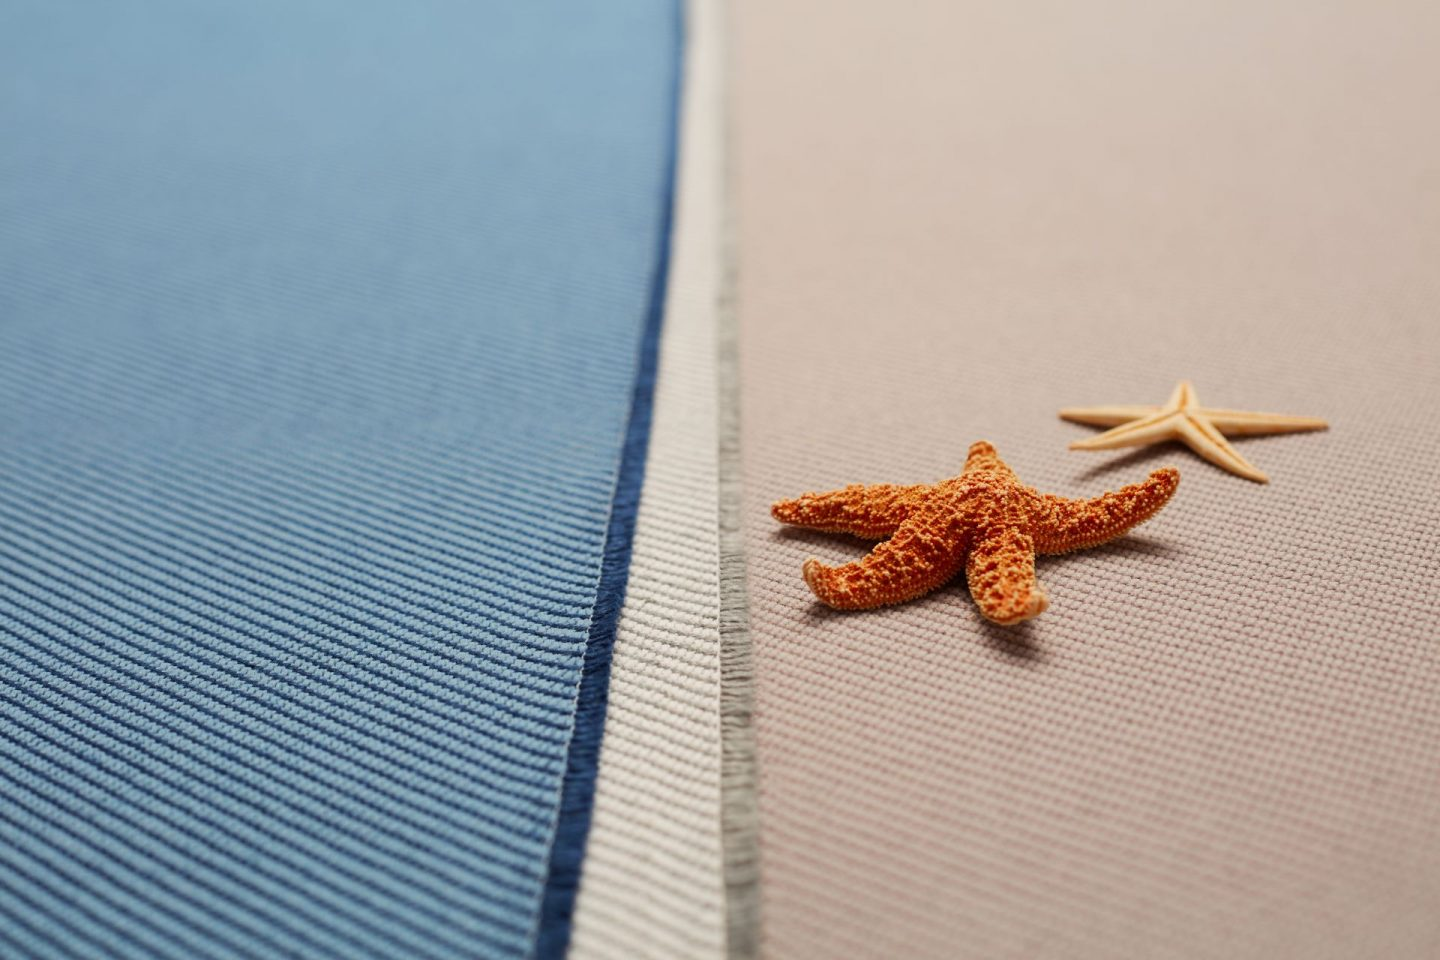 Camira is turning sea waste into fabric for the good of the planet, Stockholm Design Week, sustainable design